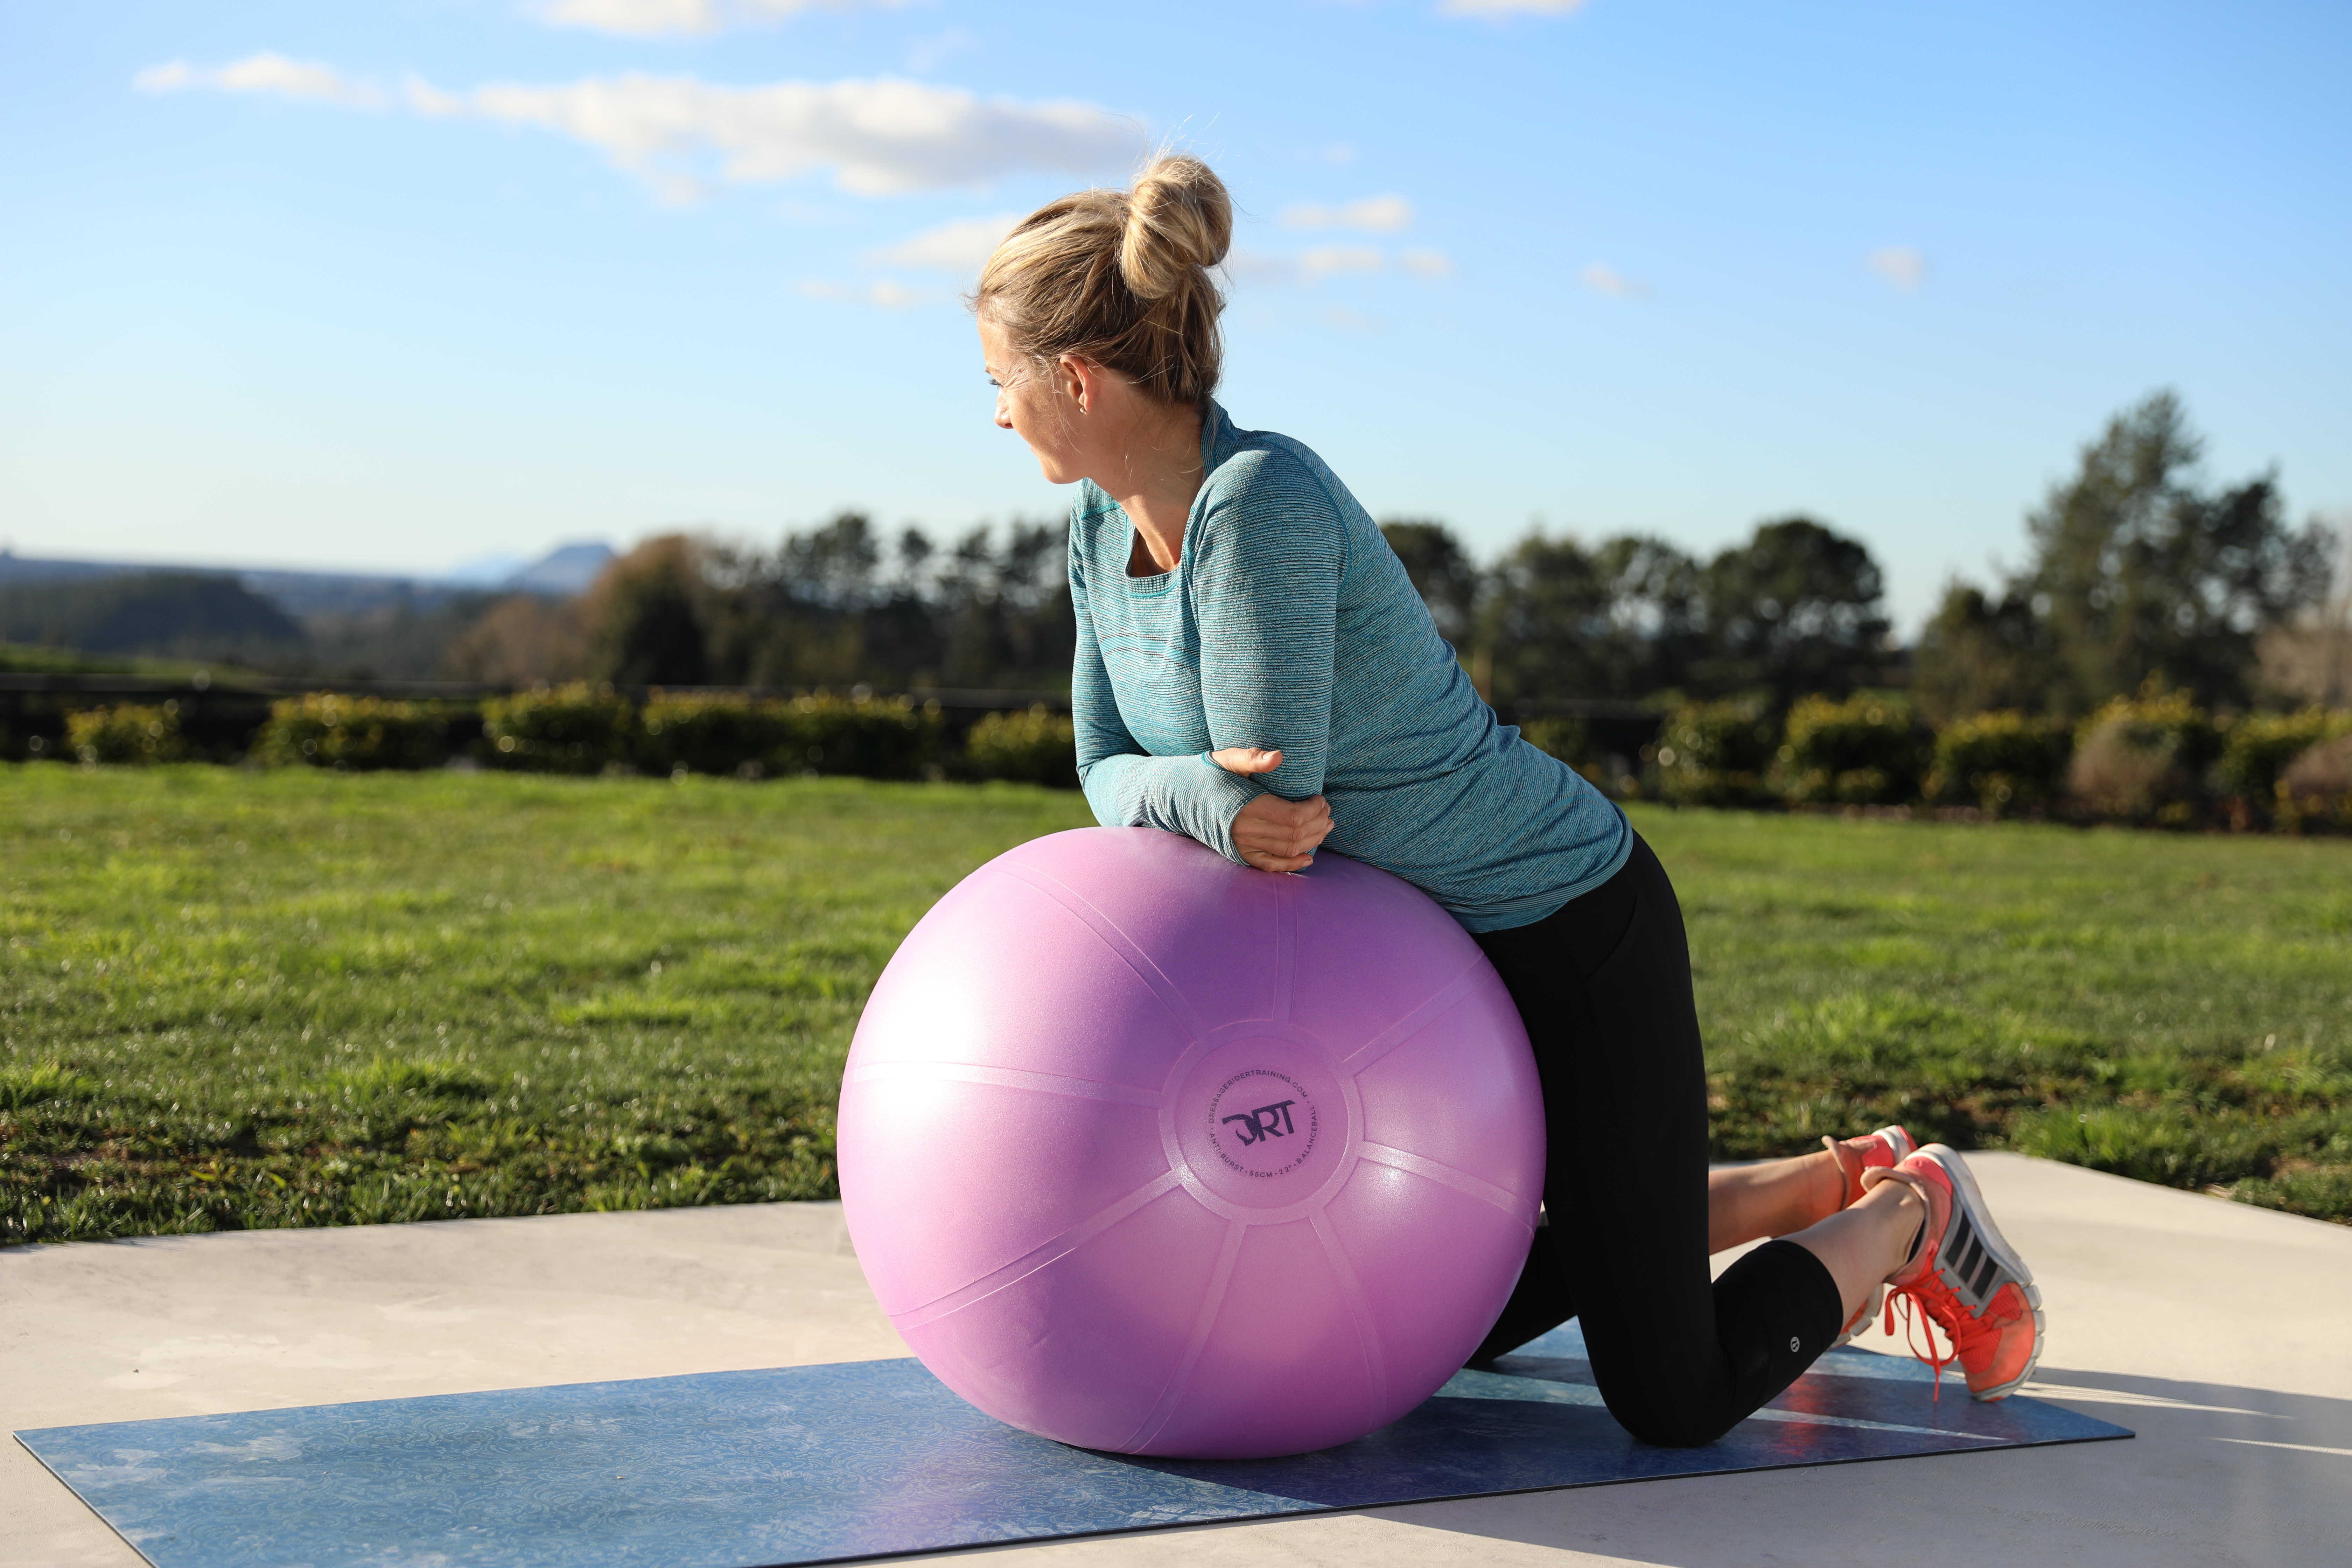 5 Swissball Moves To Improve Your Riding Posture